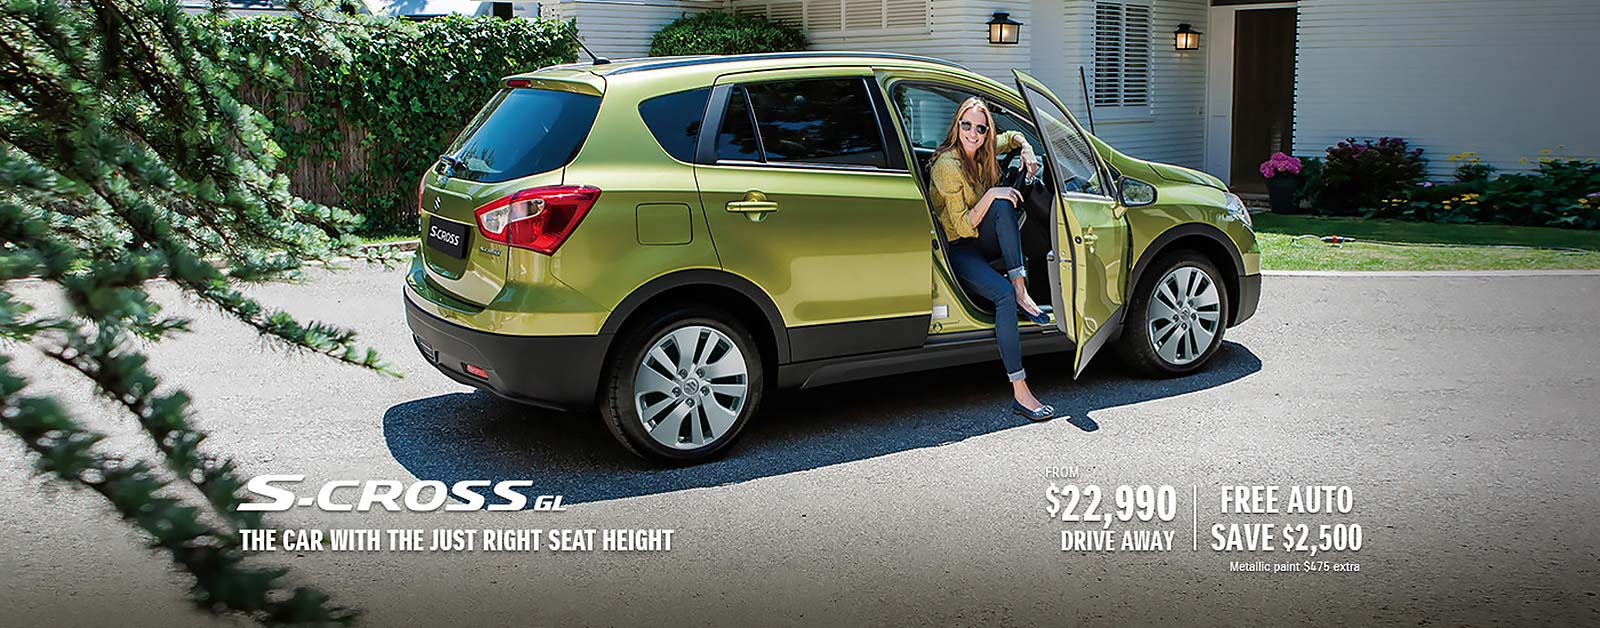 The Suzuki S-Cross GL, the car with just right seat height, from $22,990 driveaway.